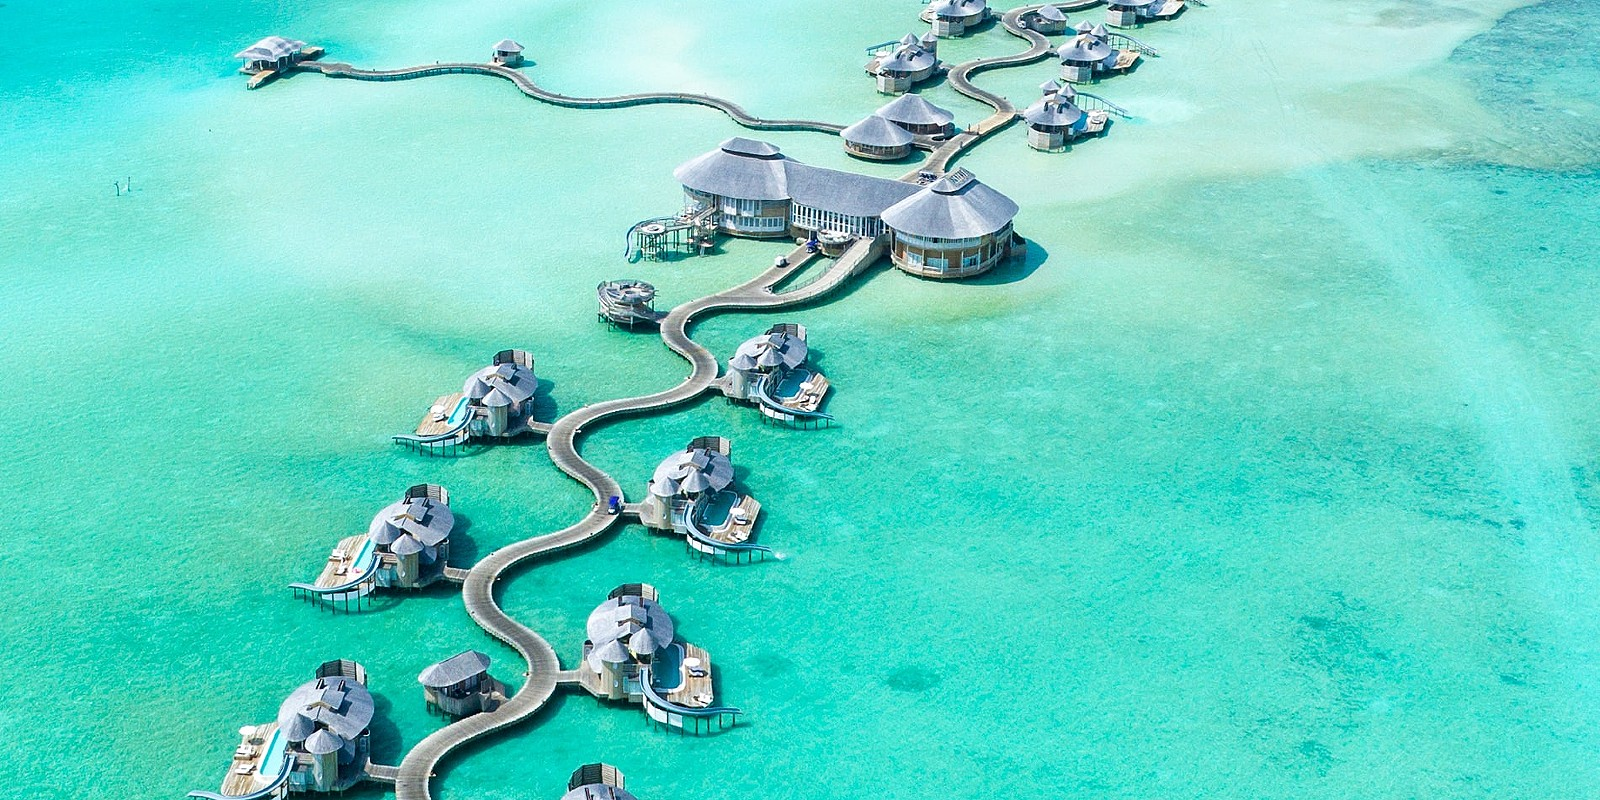 Travel blog: Our Top 6 Resorts for Over Water Villas in the Maldives (Updated September 2021)